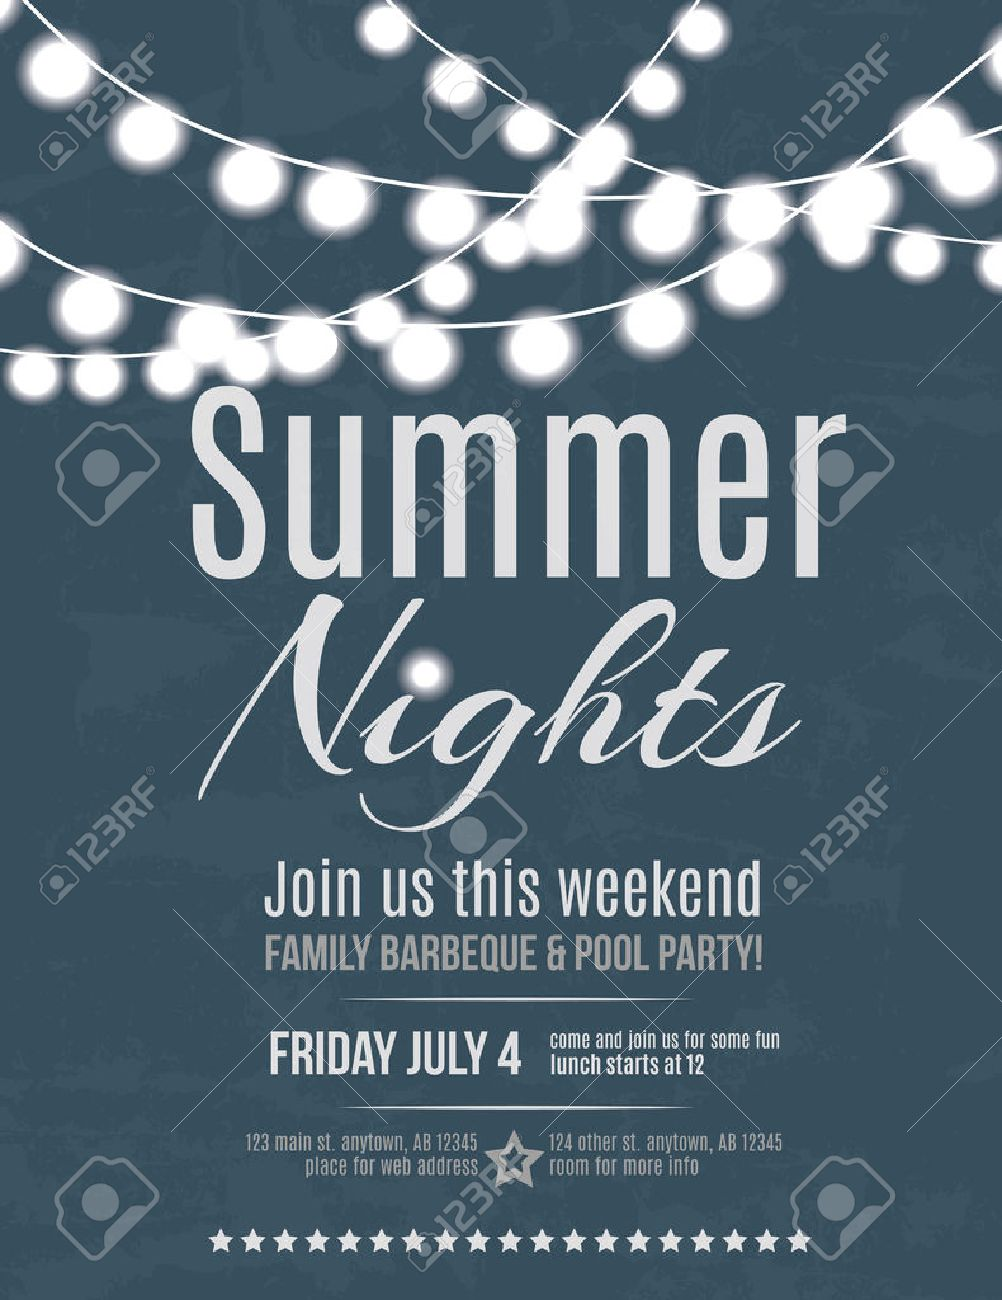 Elegant Summer Night Party Invitation Flyer Template Royalty Free ...